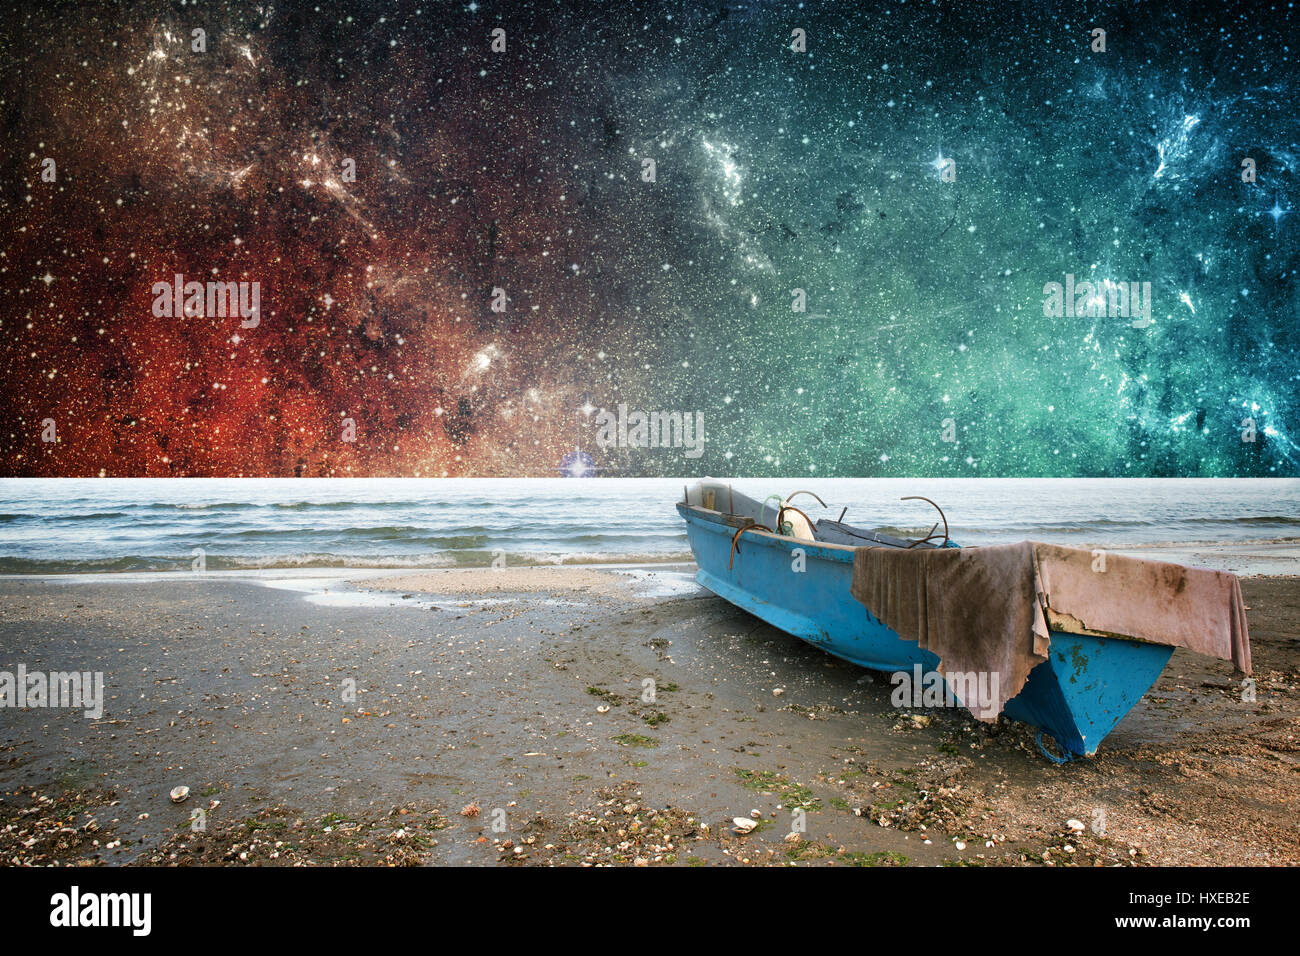 Earth and space stars fantasy wallpaper - Stock Image